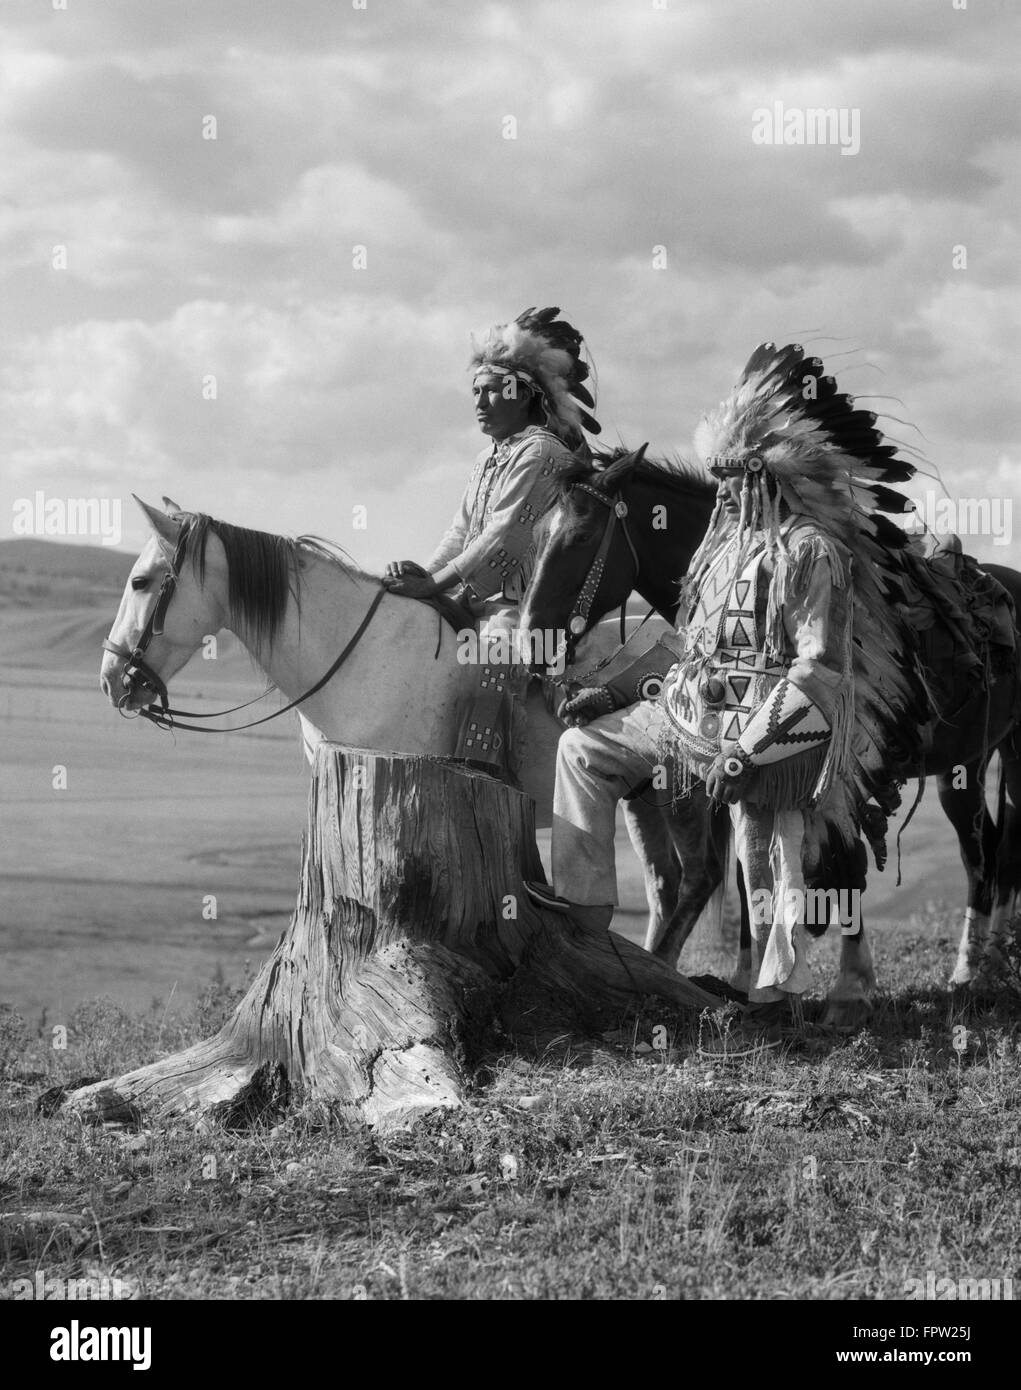 1920s TWO NATIVE AMERICAN STONEY SIOUX INDIAN MEN IN FULL FEATHER WAR BONNETS STANDING WITH HORSES ALBERTA CANADA - Stock Image